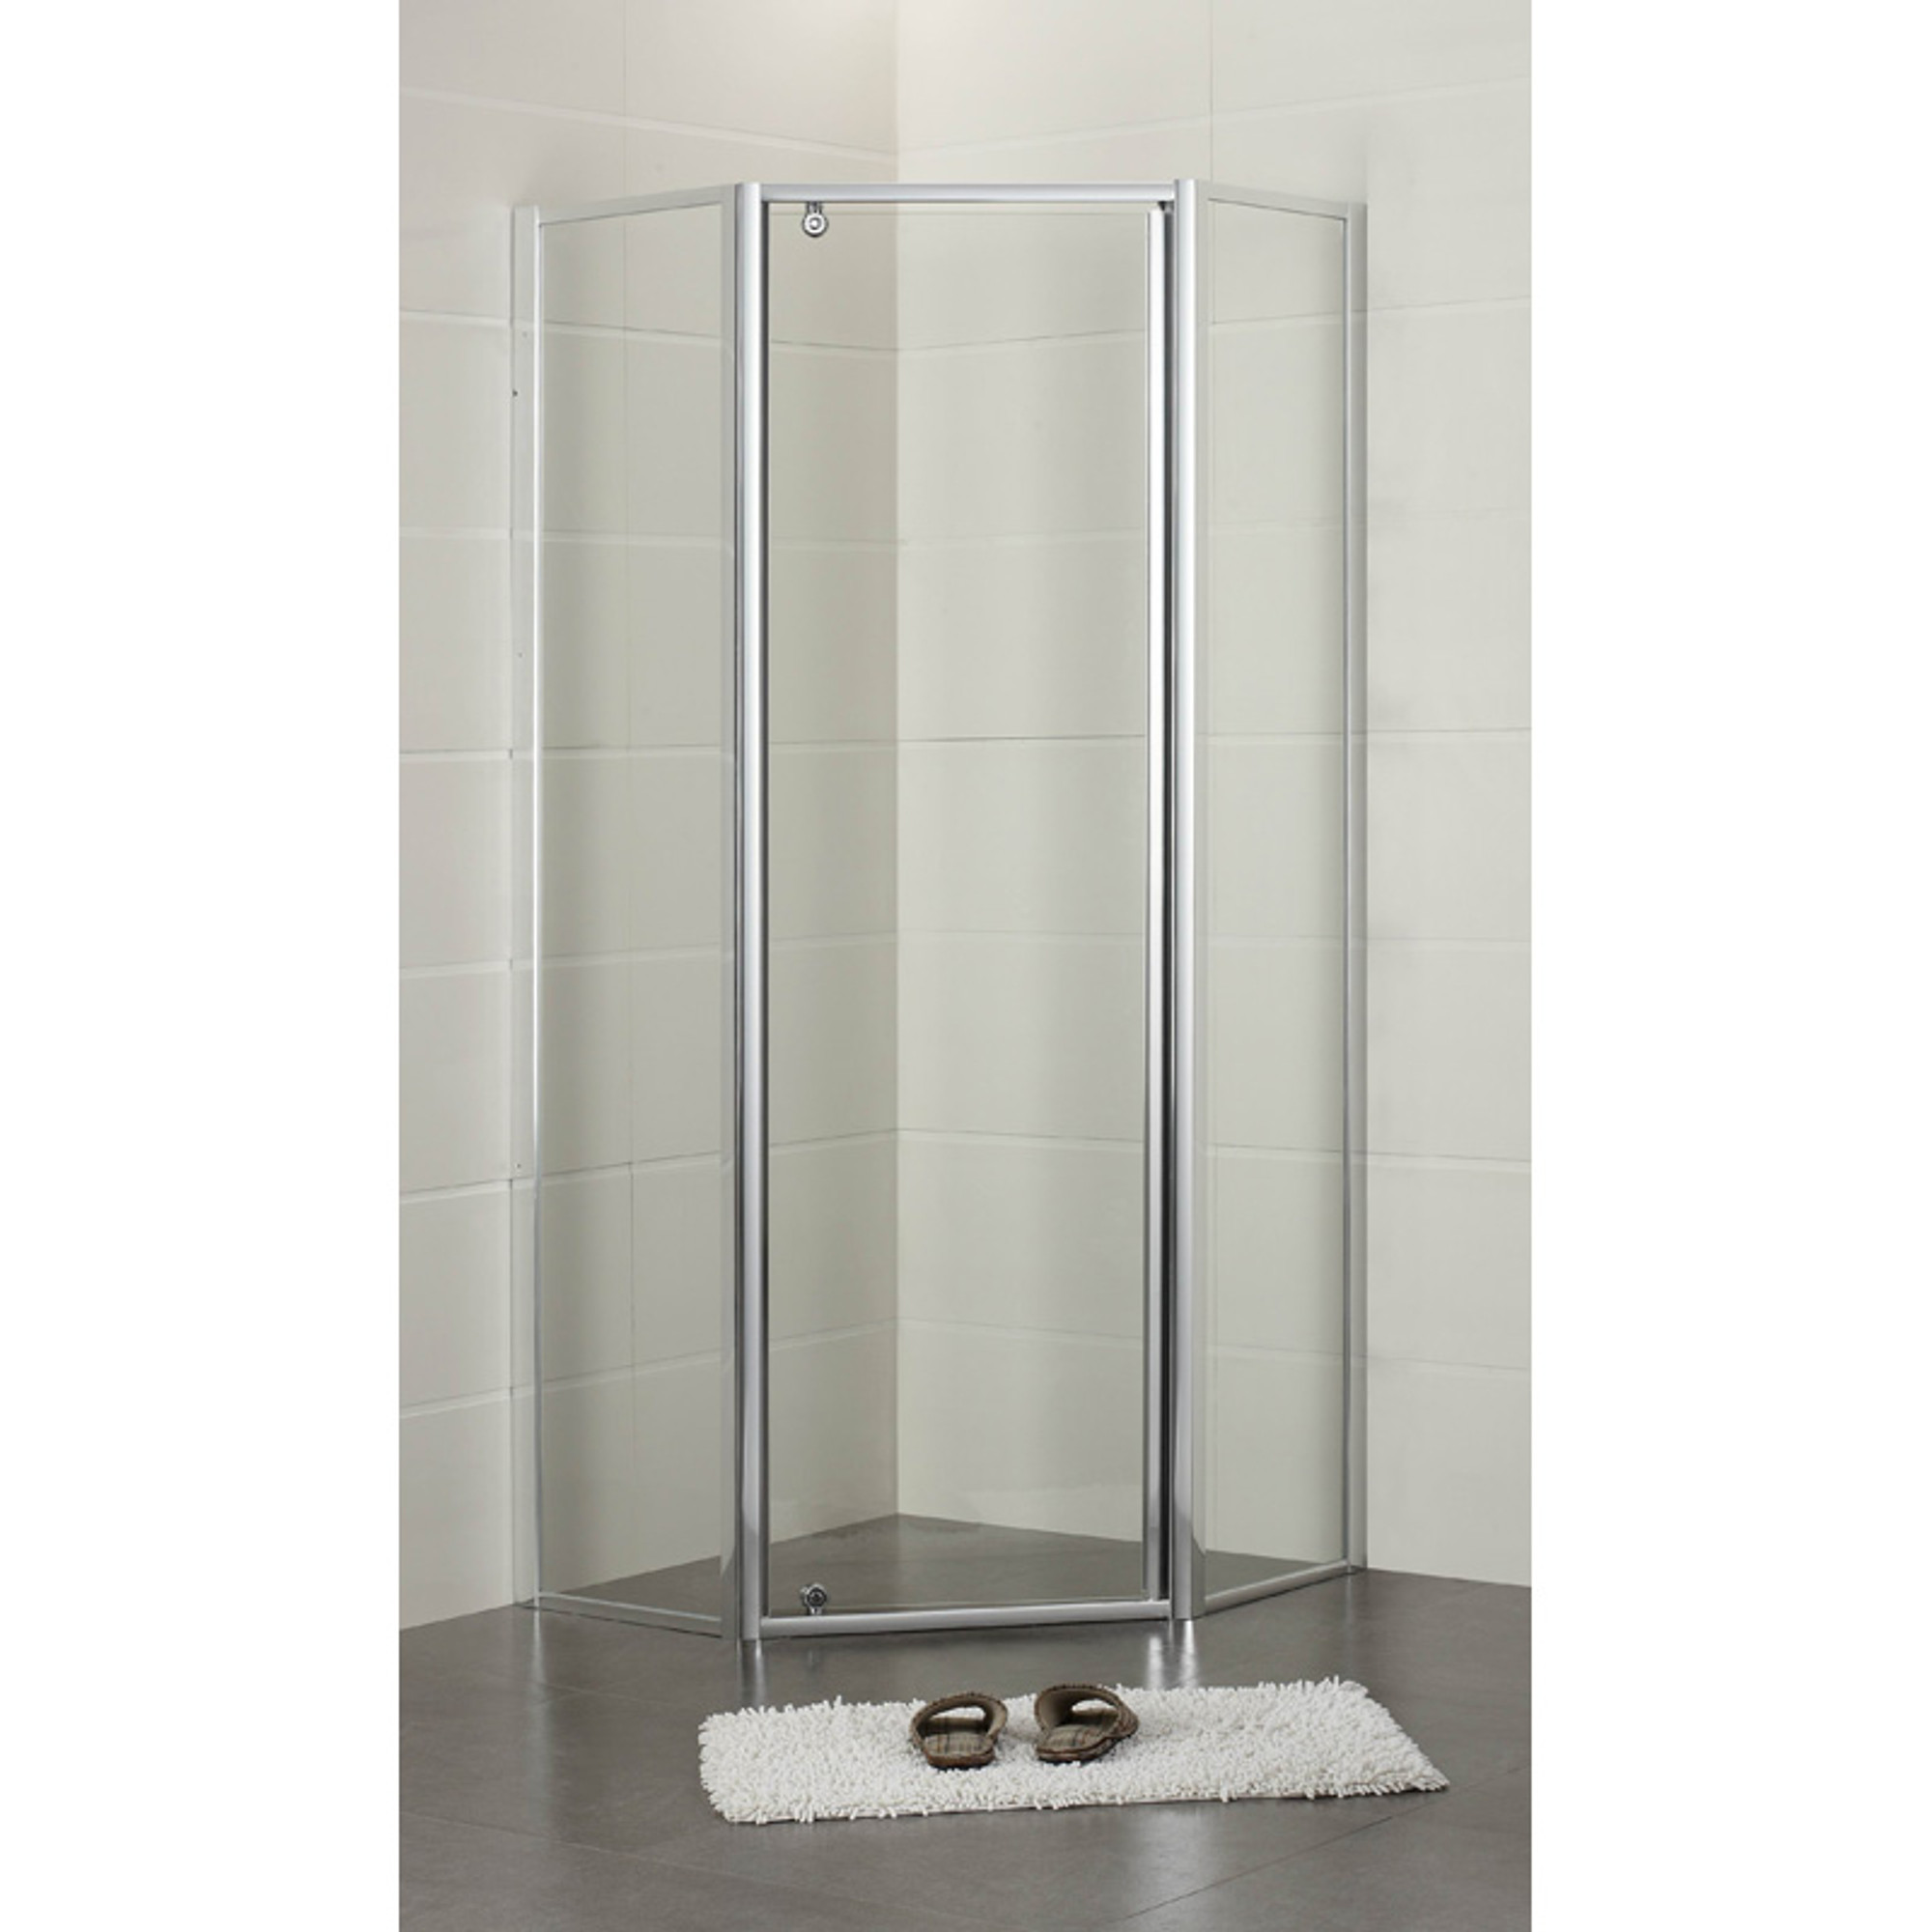 Normandy Semi Frameless Pivot Shower Screen Diamond Shape